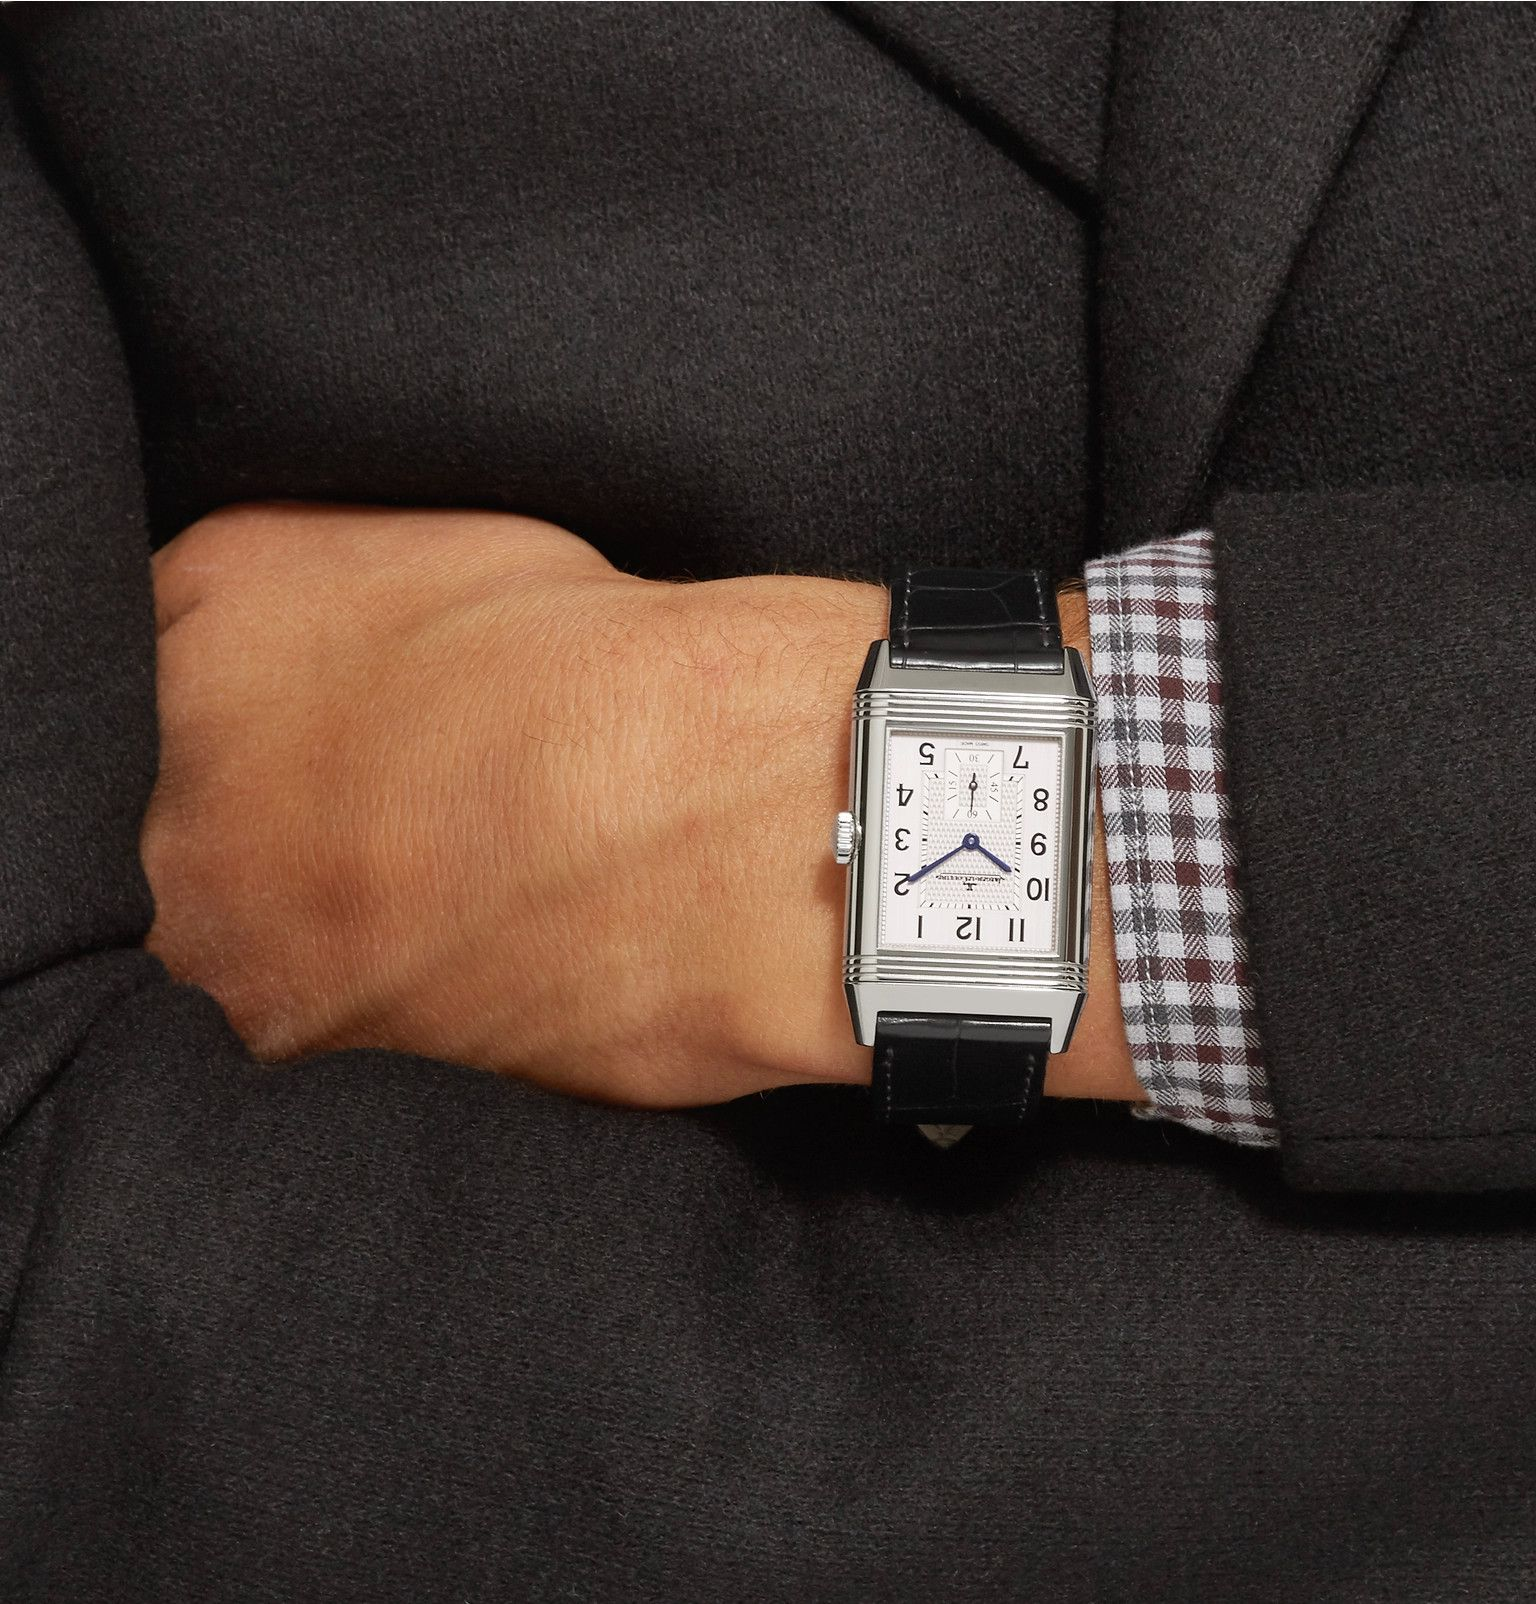 d3dc391f0b4 JAEGER-LECOULTRE Reverso Classic Large Duoface 28mm Stainless Steel And  Leather Watch